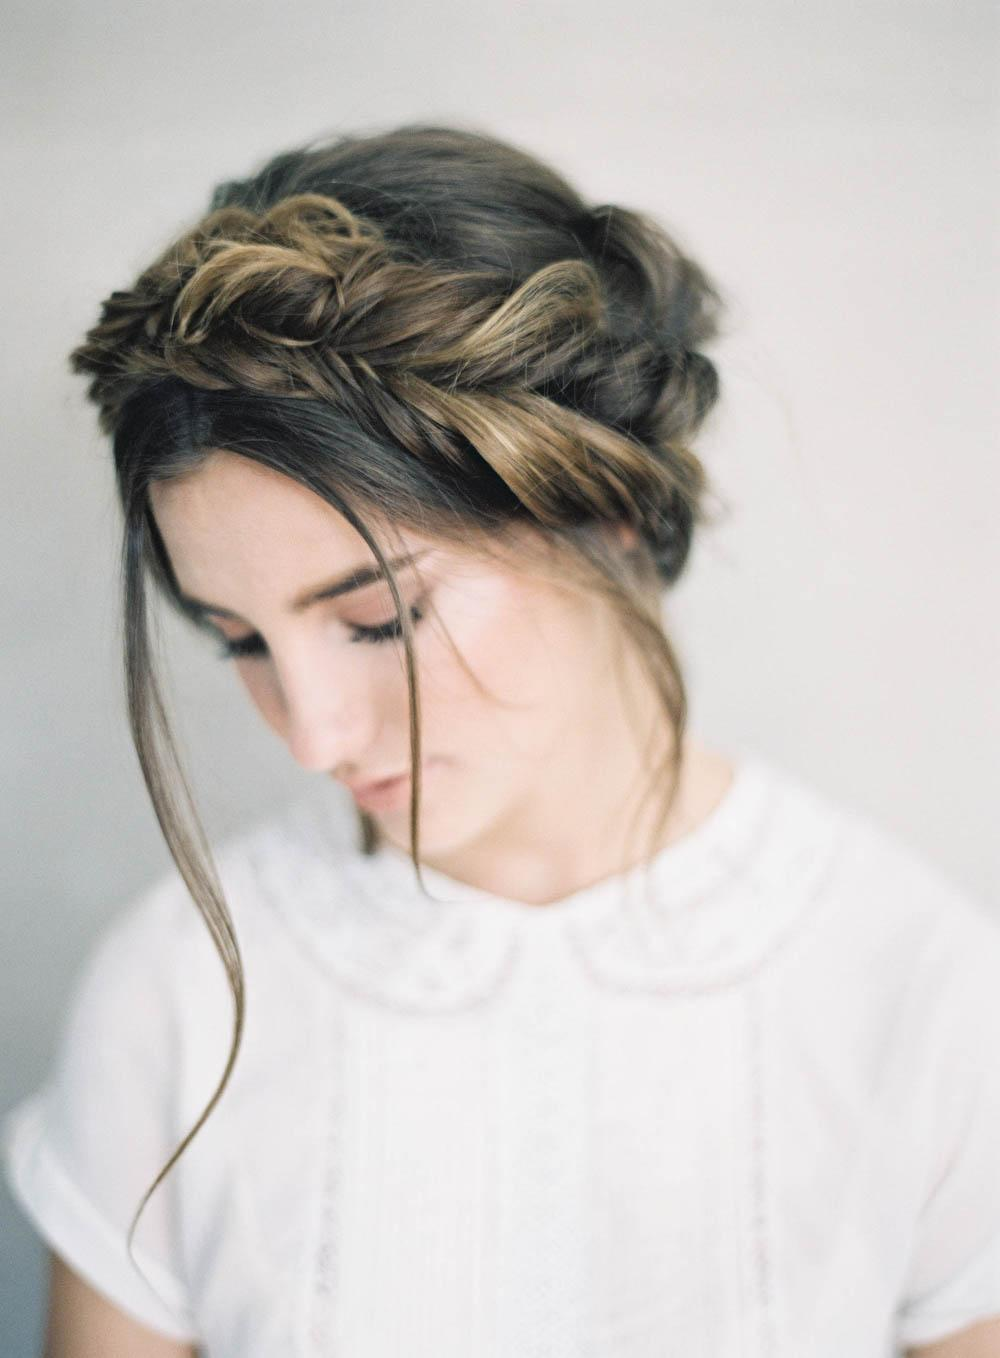 7 New Wedding Hairstyles You Ll Want To Pin Immediately